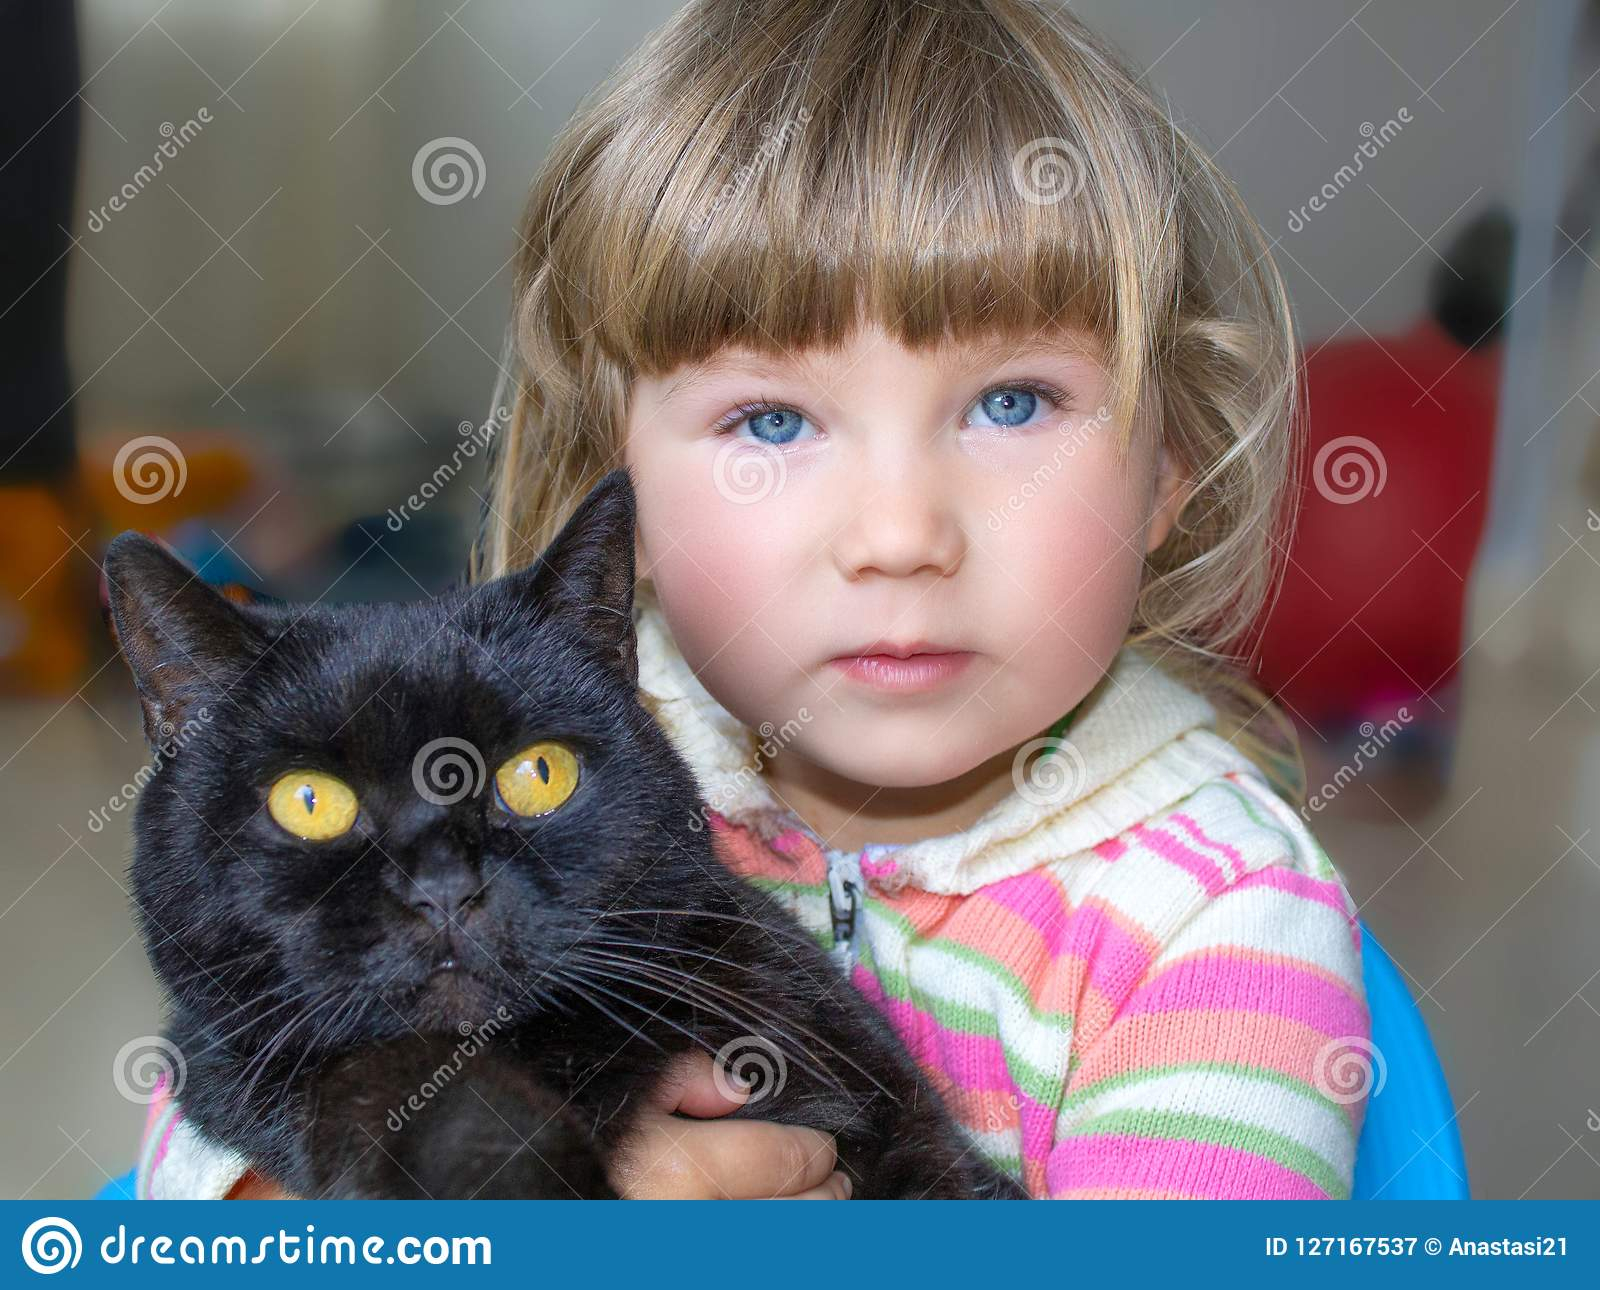 A beautiful little girl with blue eyes is holding a black cat. Friendship with pets.